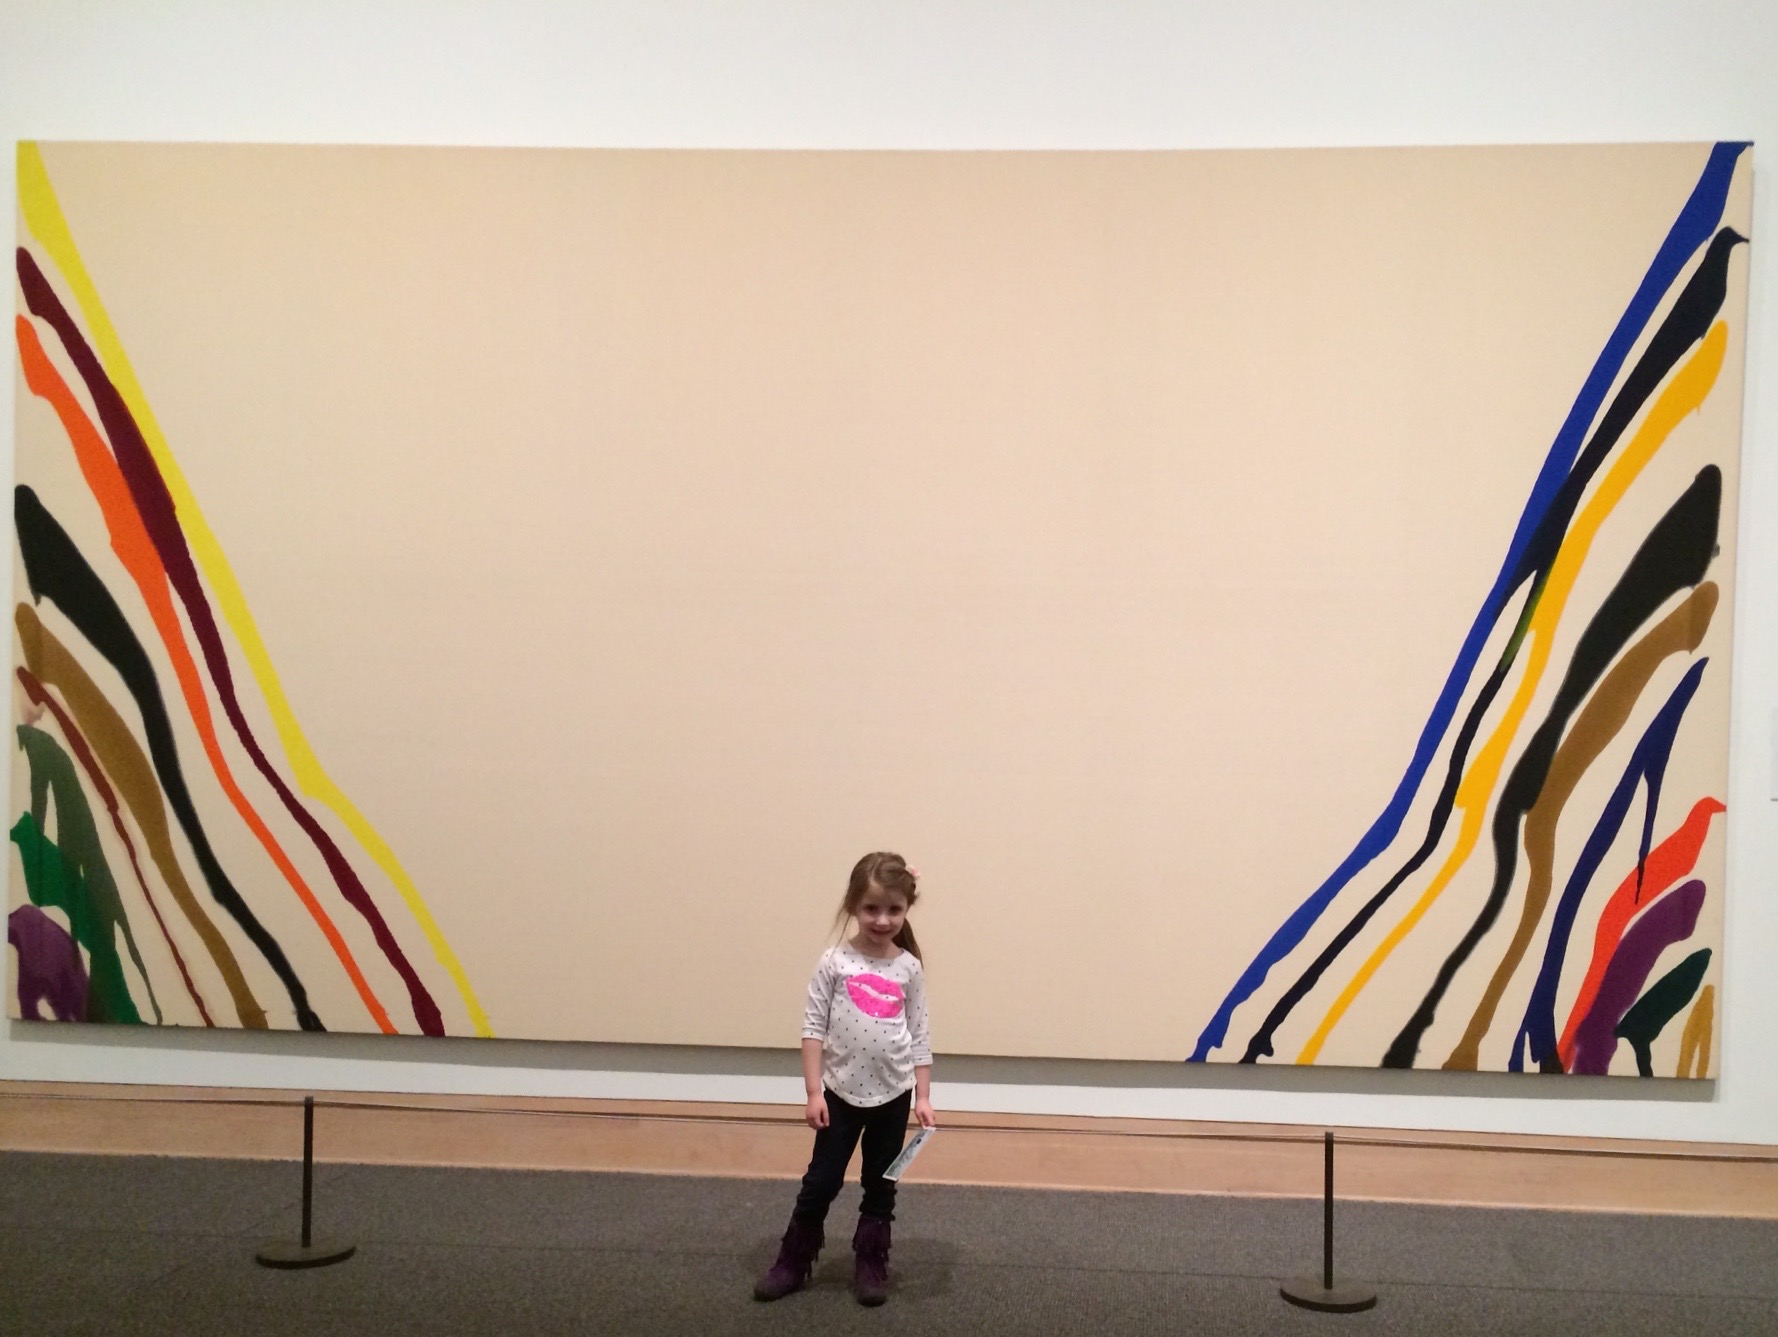 Standing in front of the great Morris Louis painting you get a sense of its monumental scale. Mayan wishes all our friends and relatives an artistic and inspirationsal Shabbat.